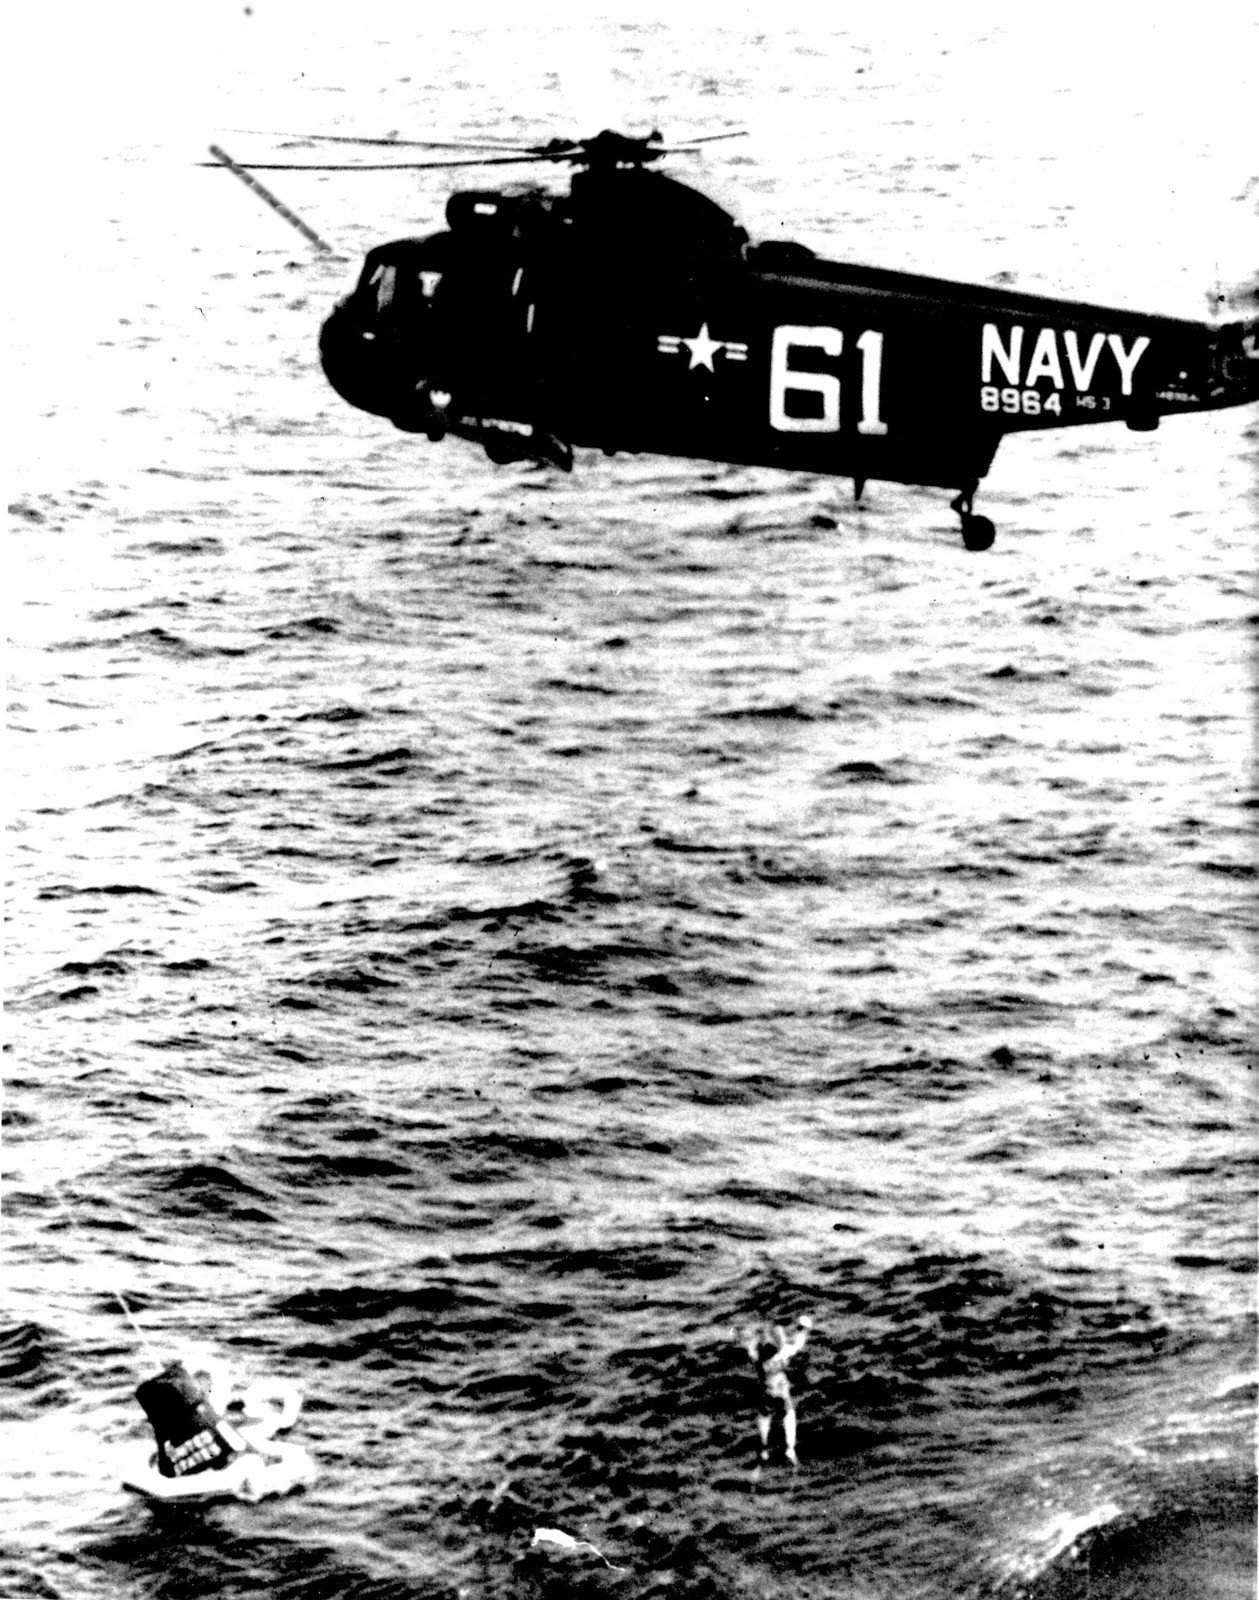 Photograph of Astronaut M. Scott Carpenter Being Recovered by a Navy Helicopter after the Aurora 7 Flight